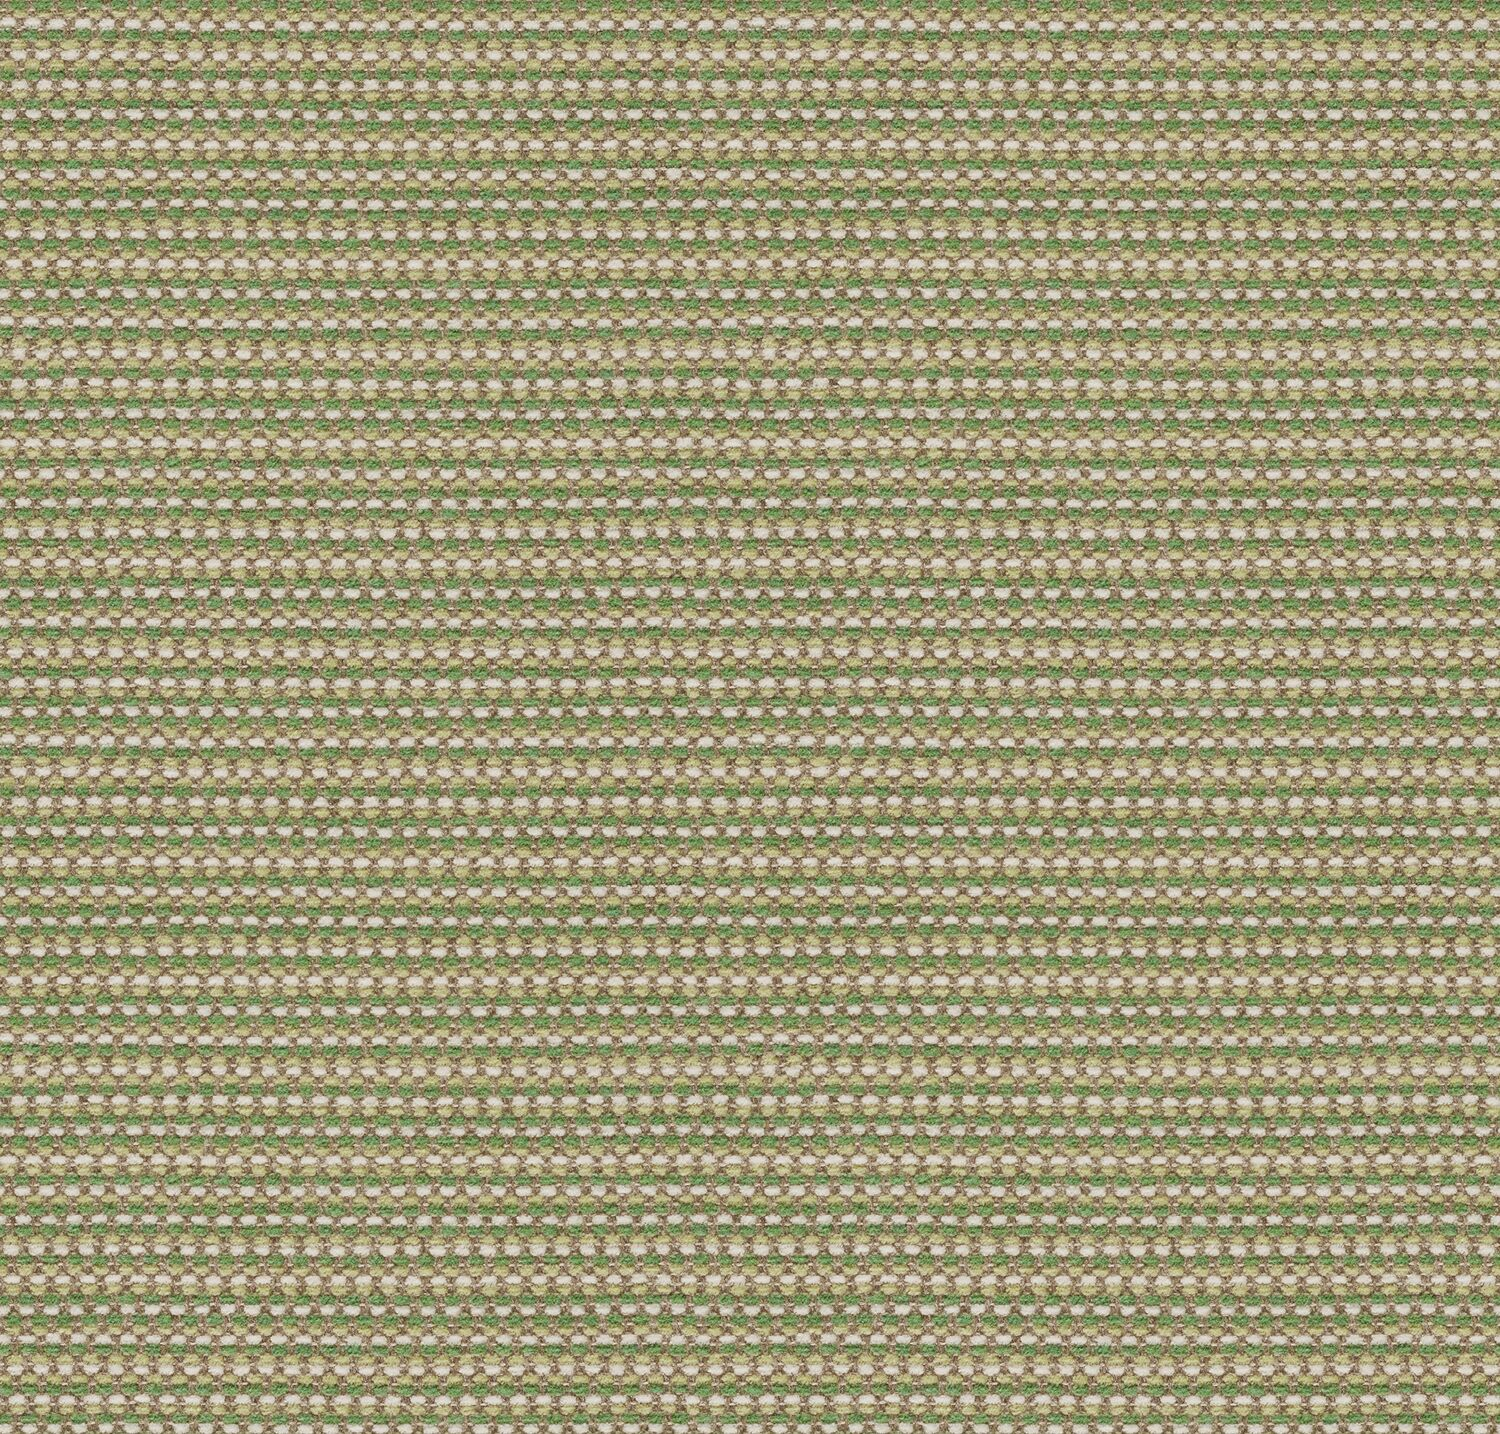 Megapixel - Seedling - 4097 - 06 Tileable Swatches